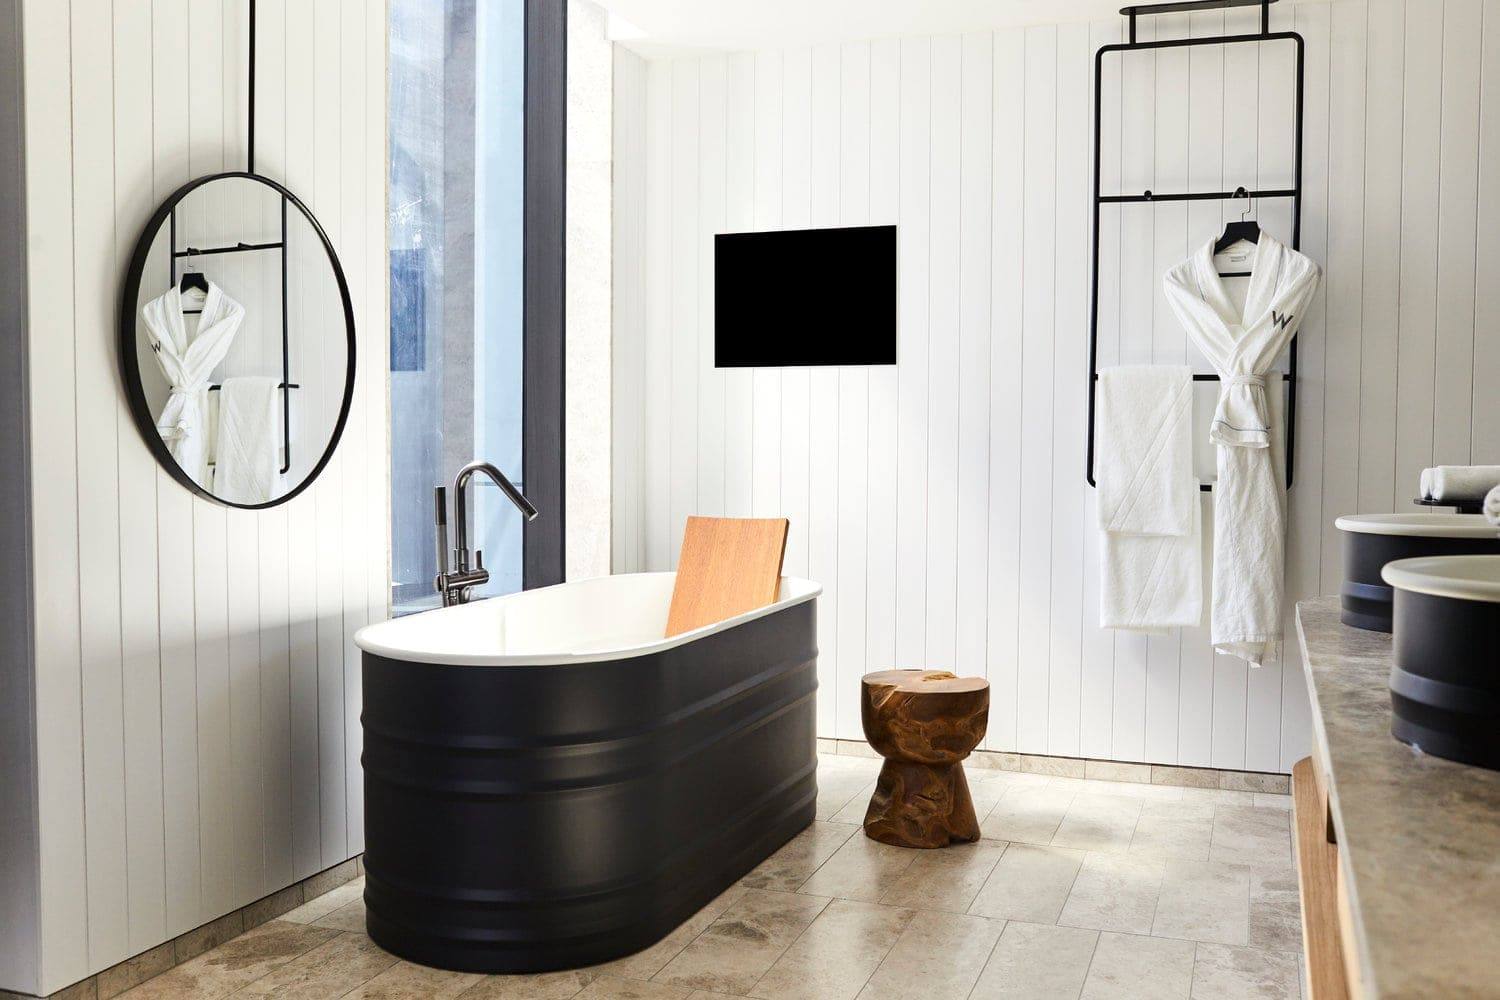 australian design review tongue and groove wall panelling in white bathroom